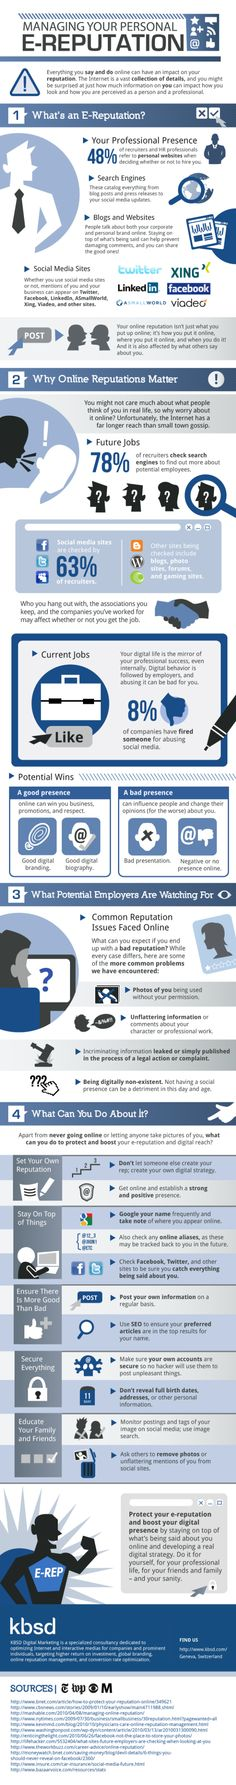 "You don't have to be running for president to care about your online reputation. Almost everything you do online is easy to track, especially when you're using social media sites. This infographic shows you how to manage your ""e-reputation,""Internet Inbound Marketing, Marketing Digital, Marketing Trends, Content Marketing, Internet Marketing, Social Media Marketing, Facebook Marketing, Marketing Strategies, Marketing Dashboard"